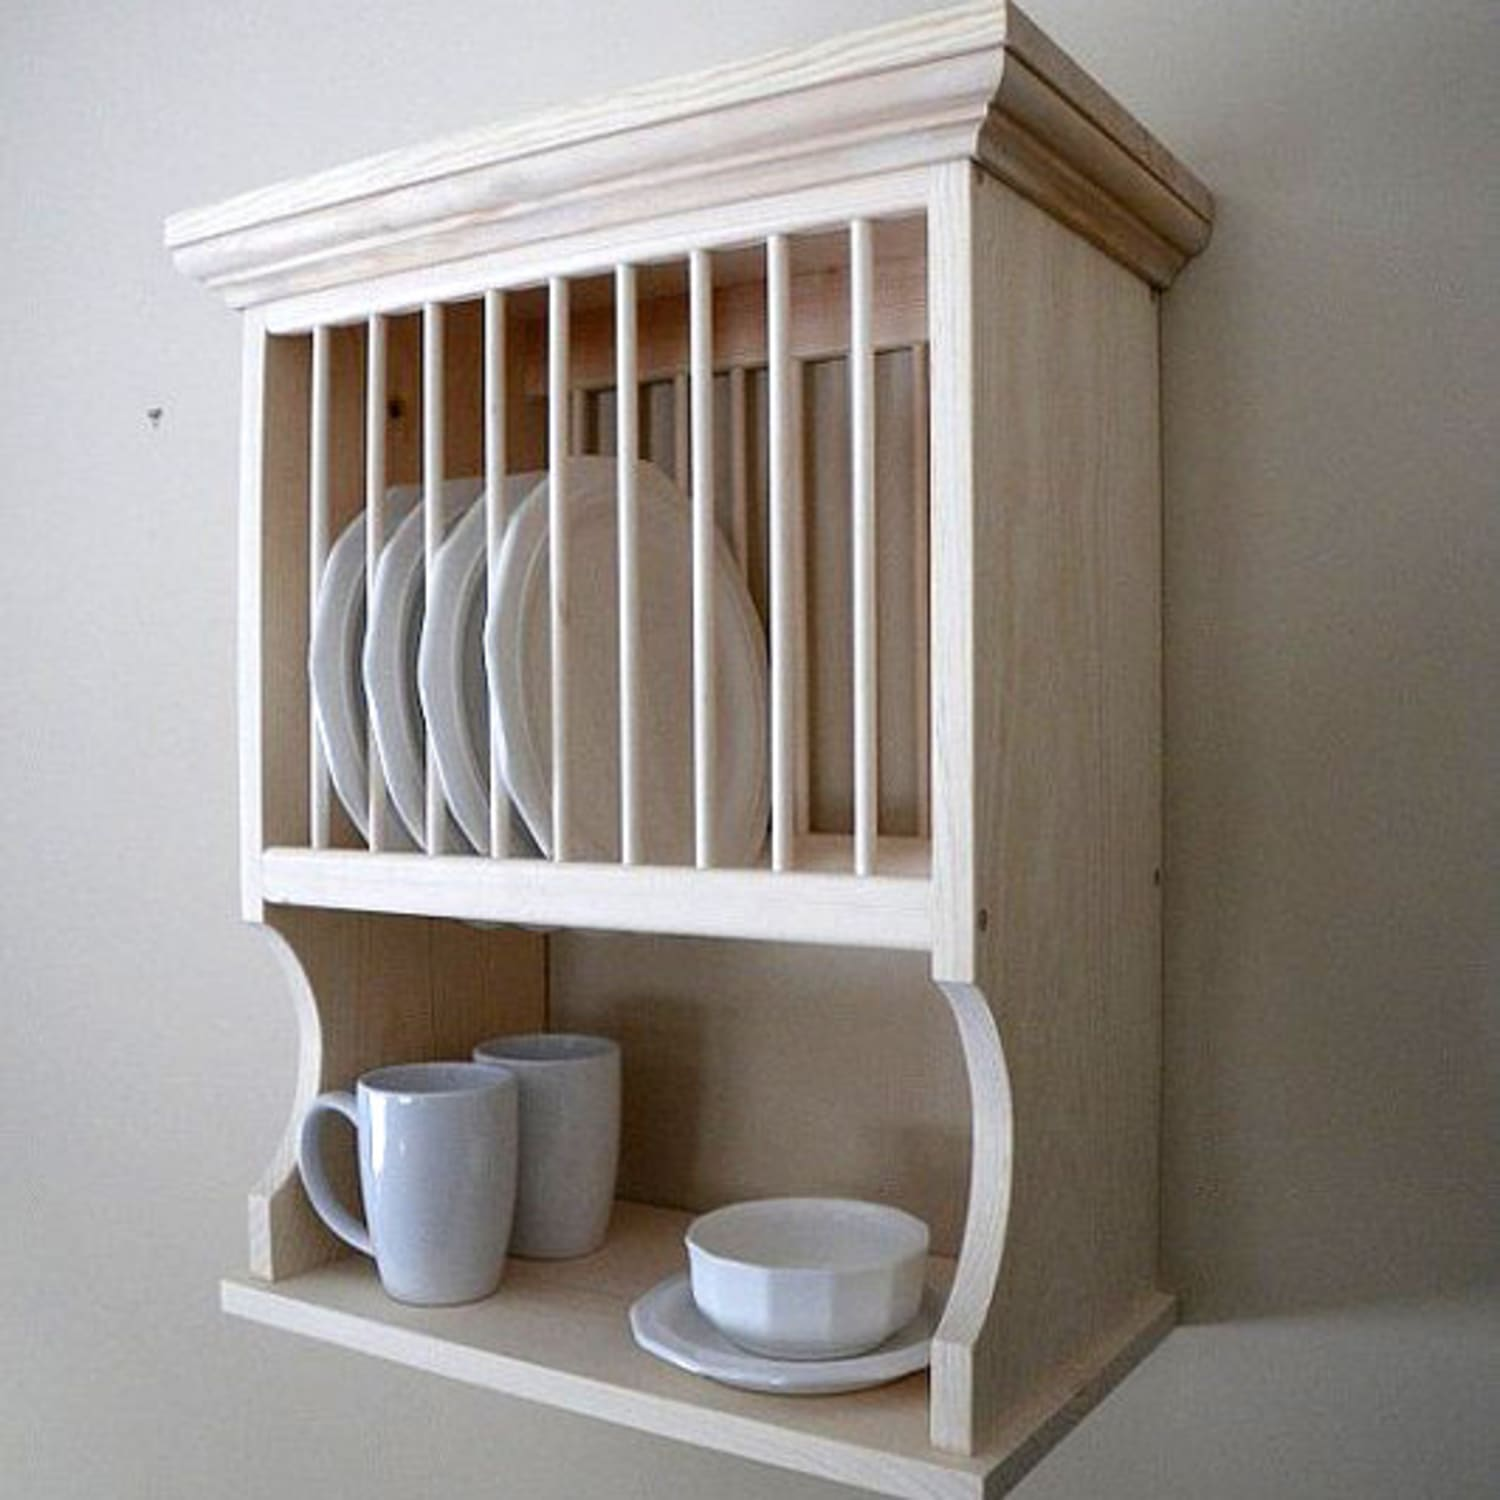 3 Different Wall Mounted Dish Racks What S Your Style Kitchn